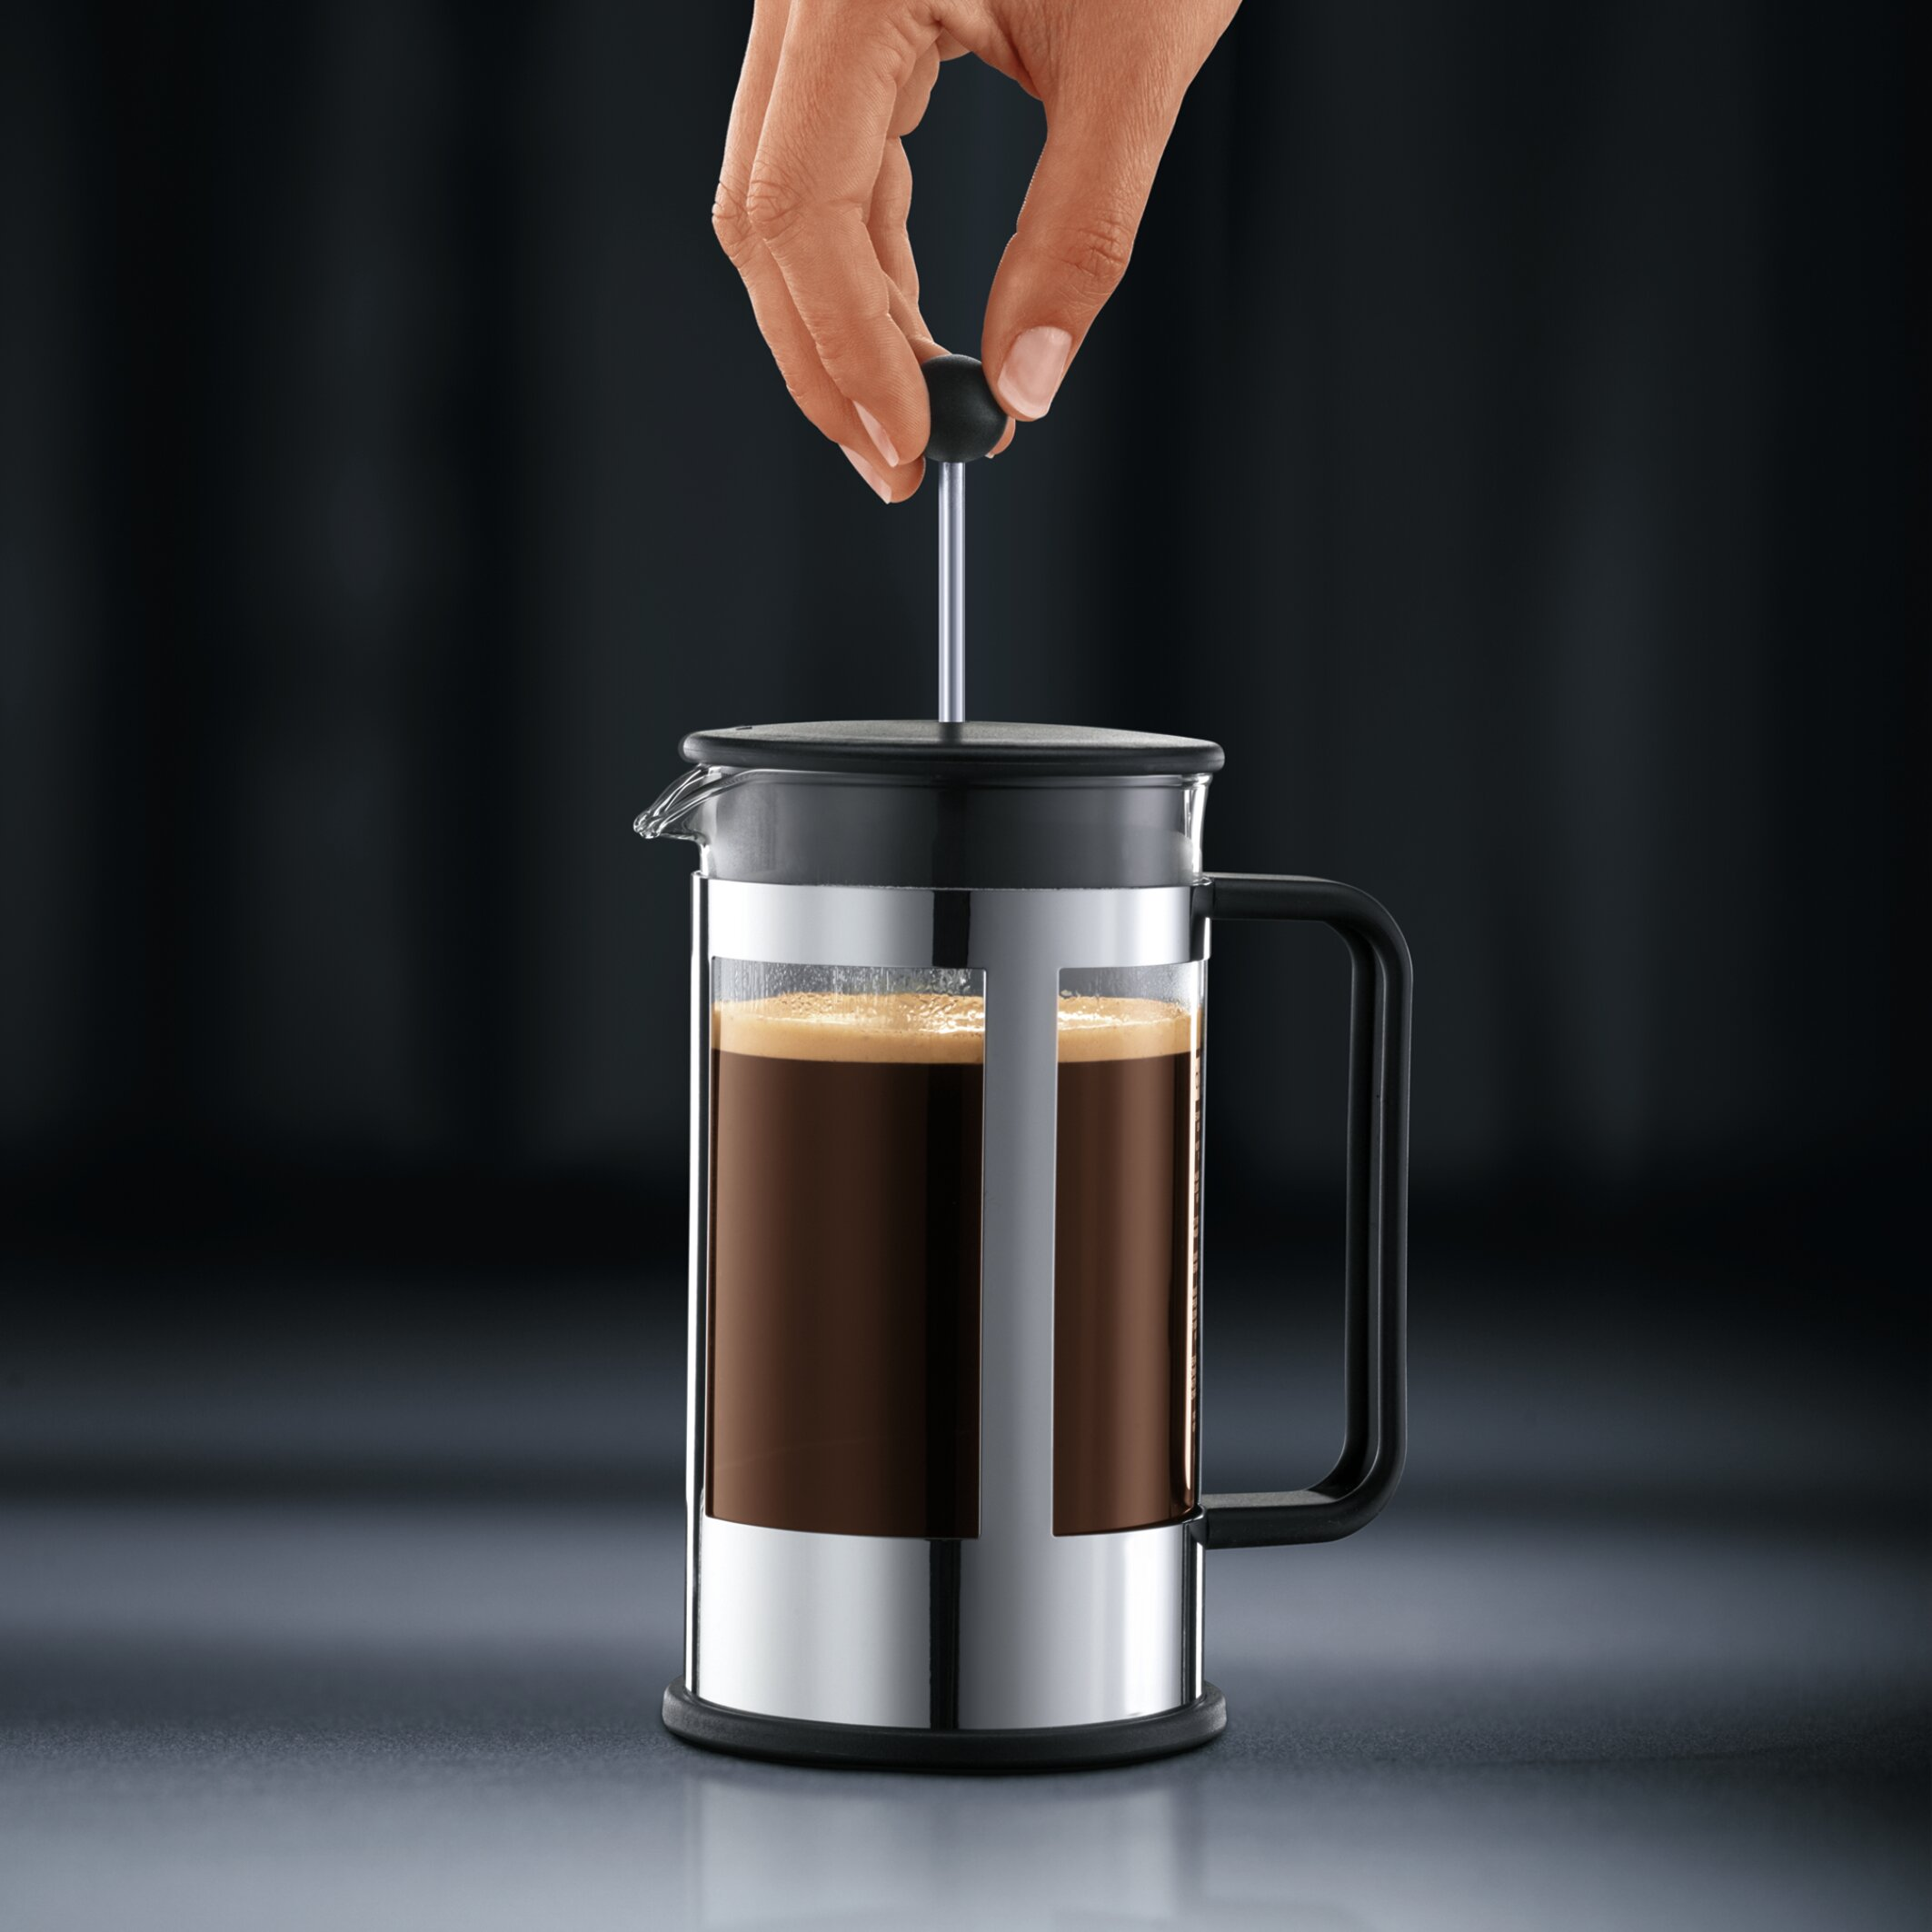 Bodum Kenya 8 Cup French Press Coffeemaker with Carafe 1978 01  Cup Bodum French Press